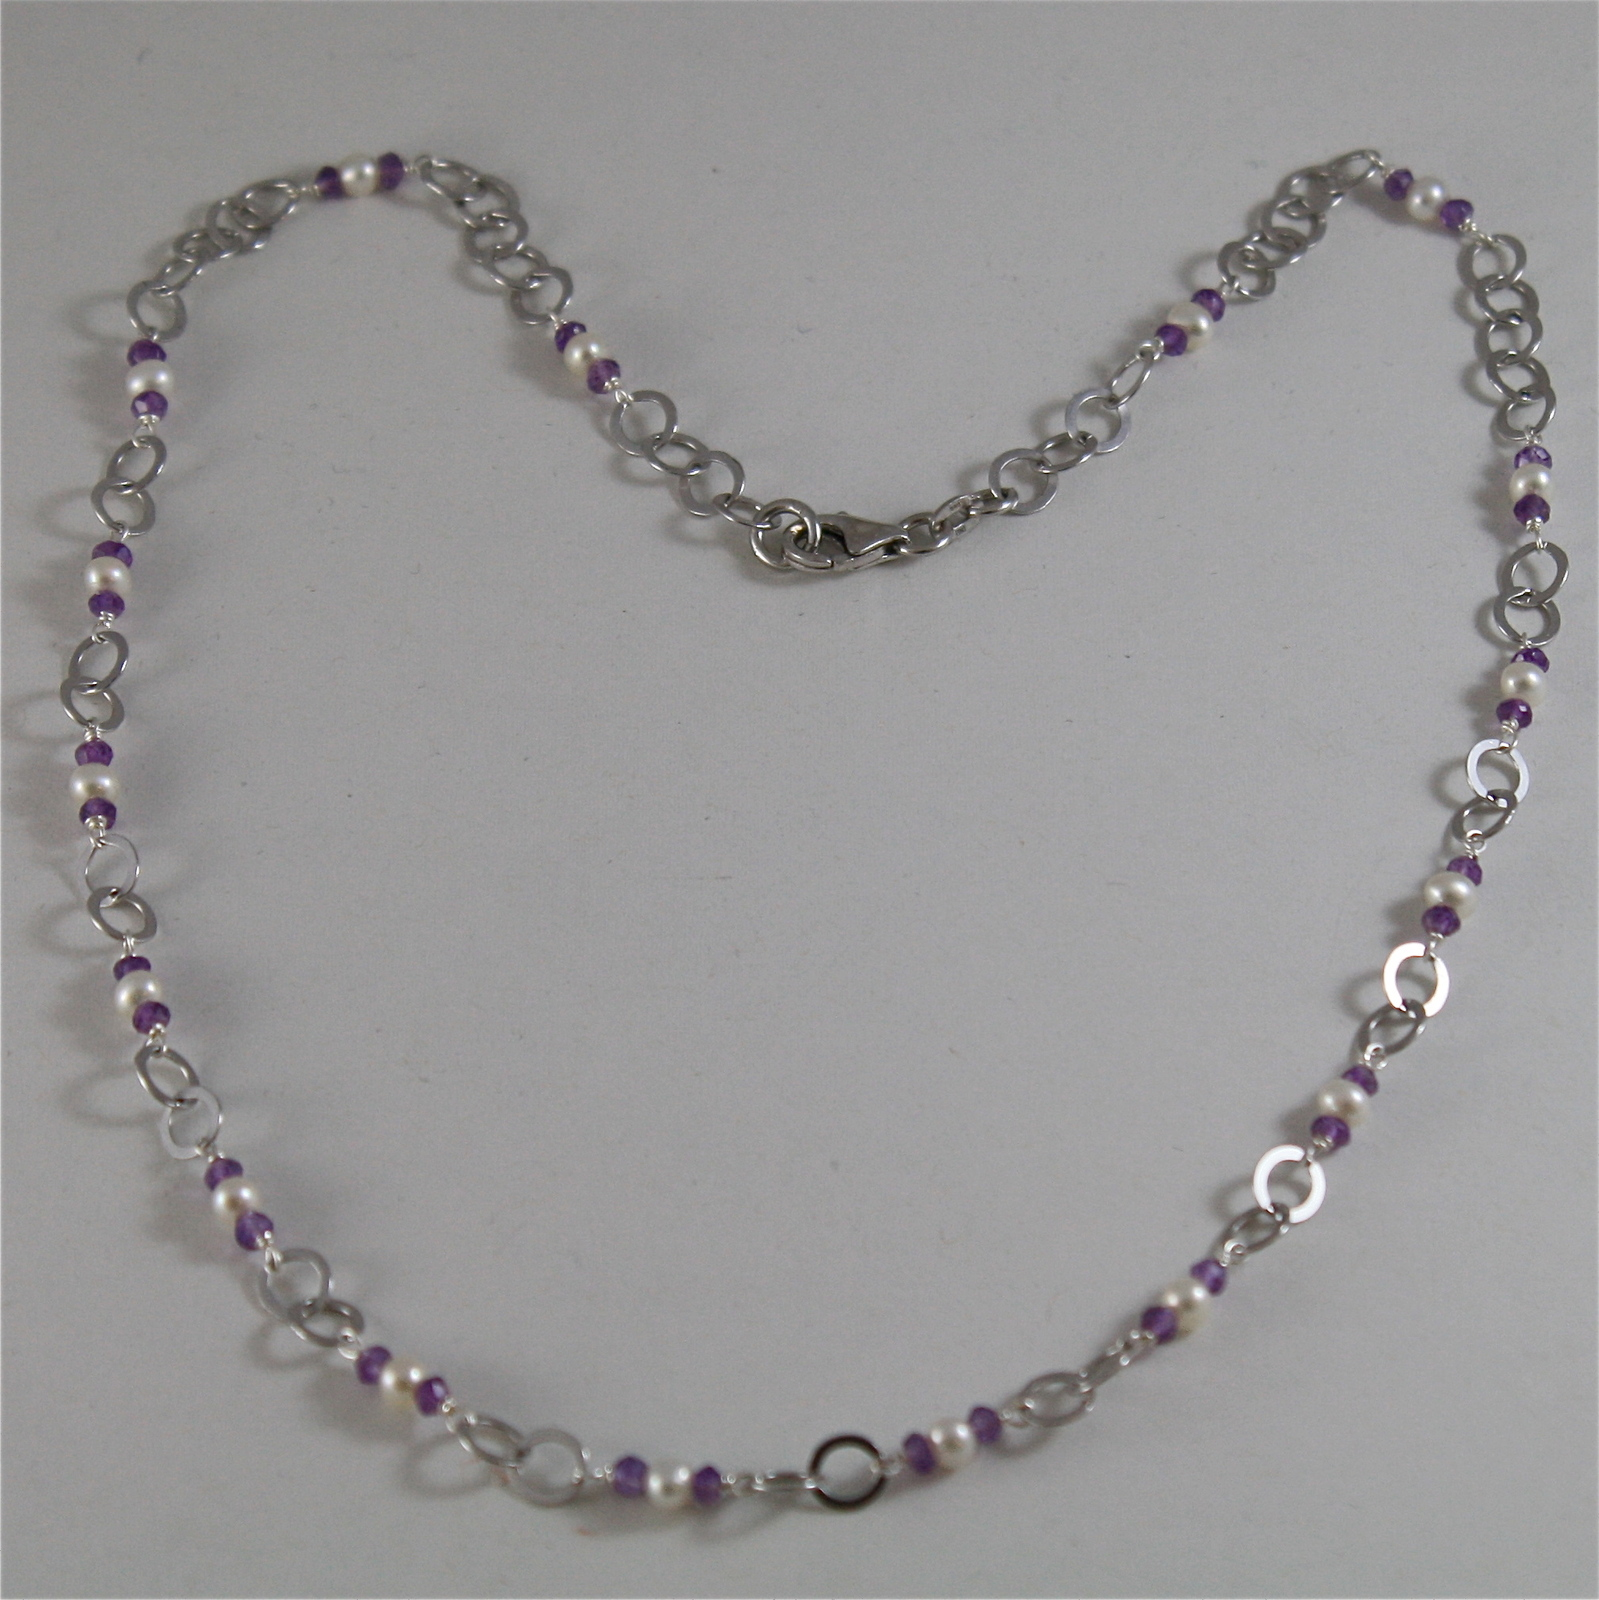 925 RODIUM SILVER NECKLACE WITH NATURAL AMETHYST AND WHITE PEARLS, MADE IN ITALY